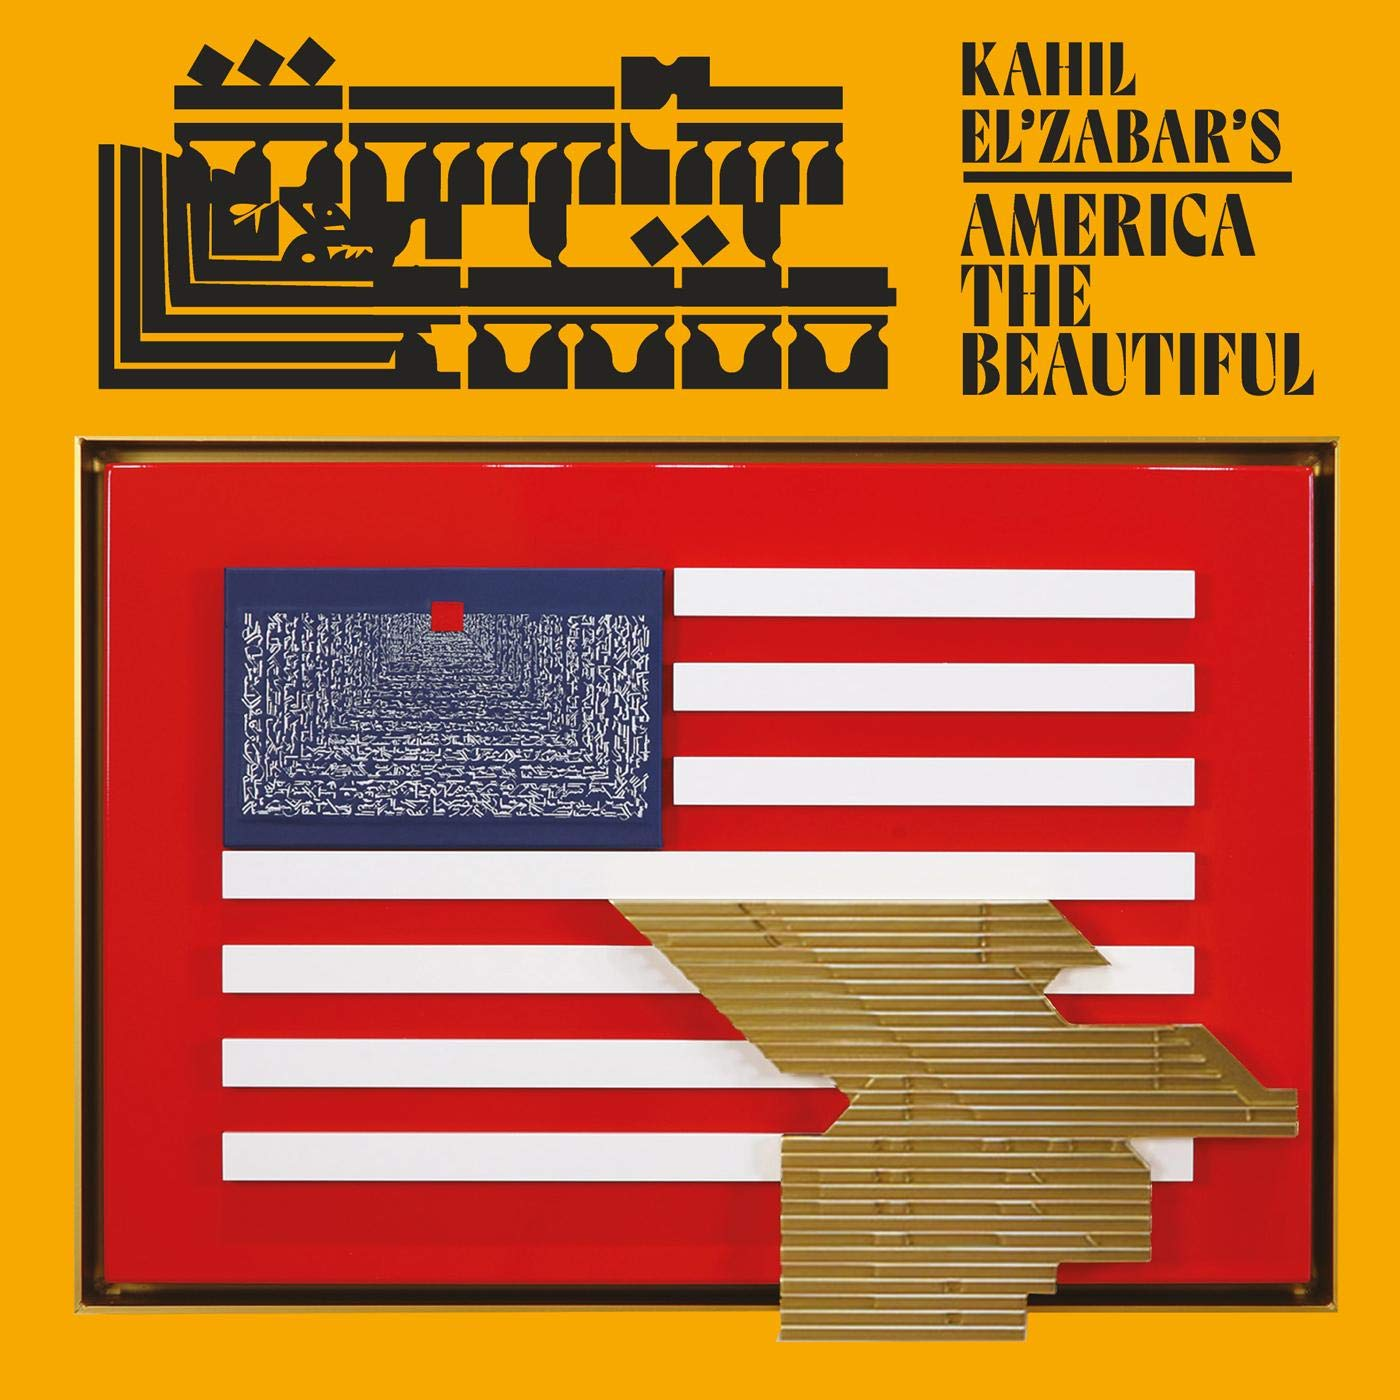 KAHIL ELZABAR - Kahil ElZabars America The Beautiful cover